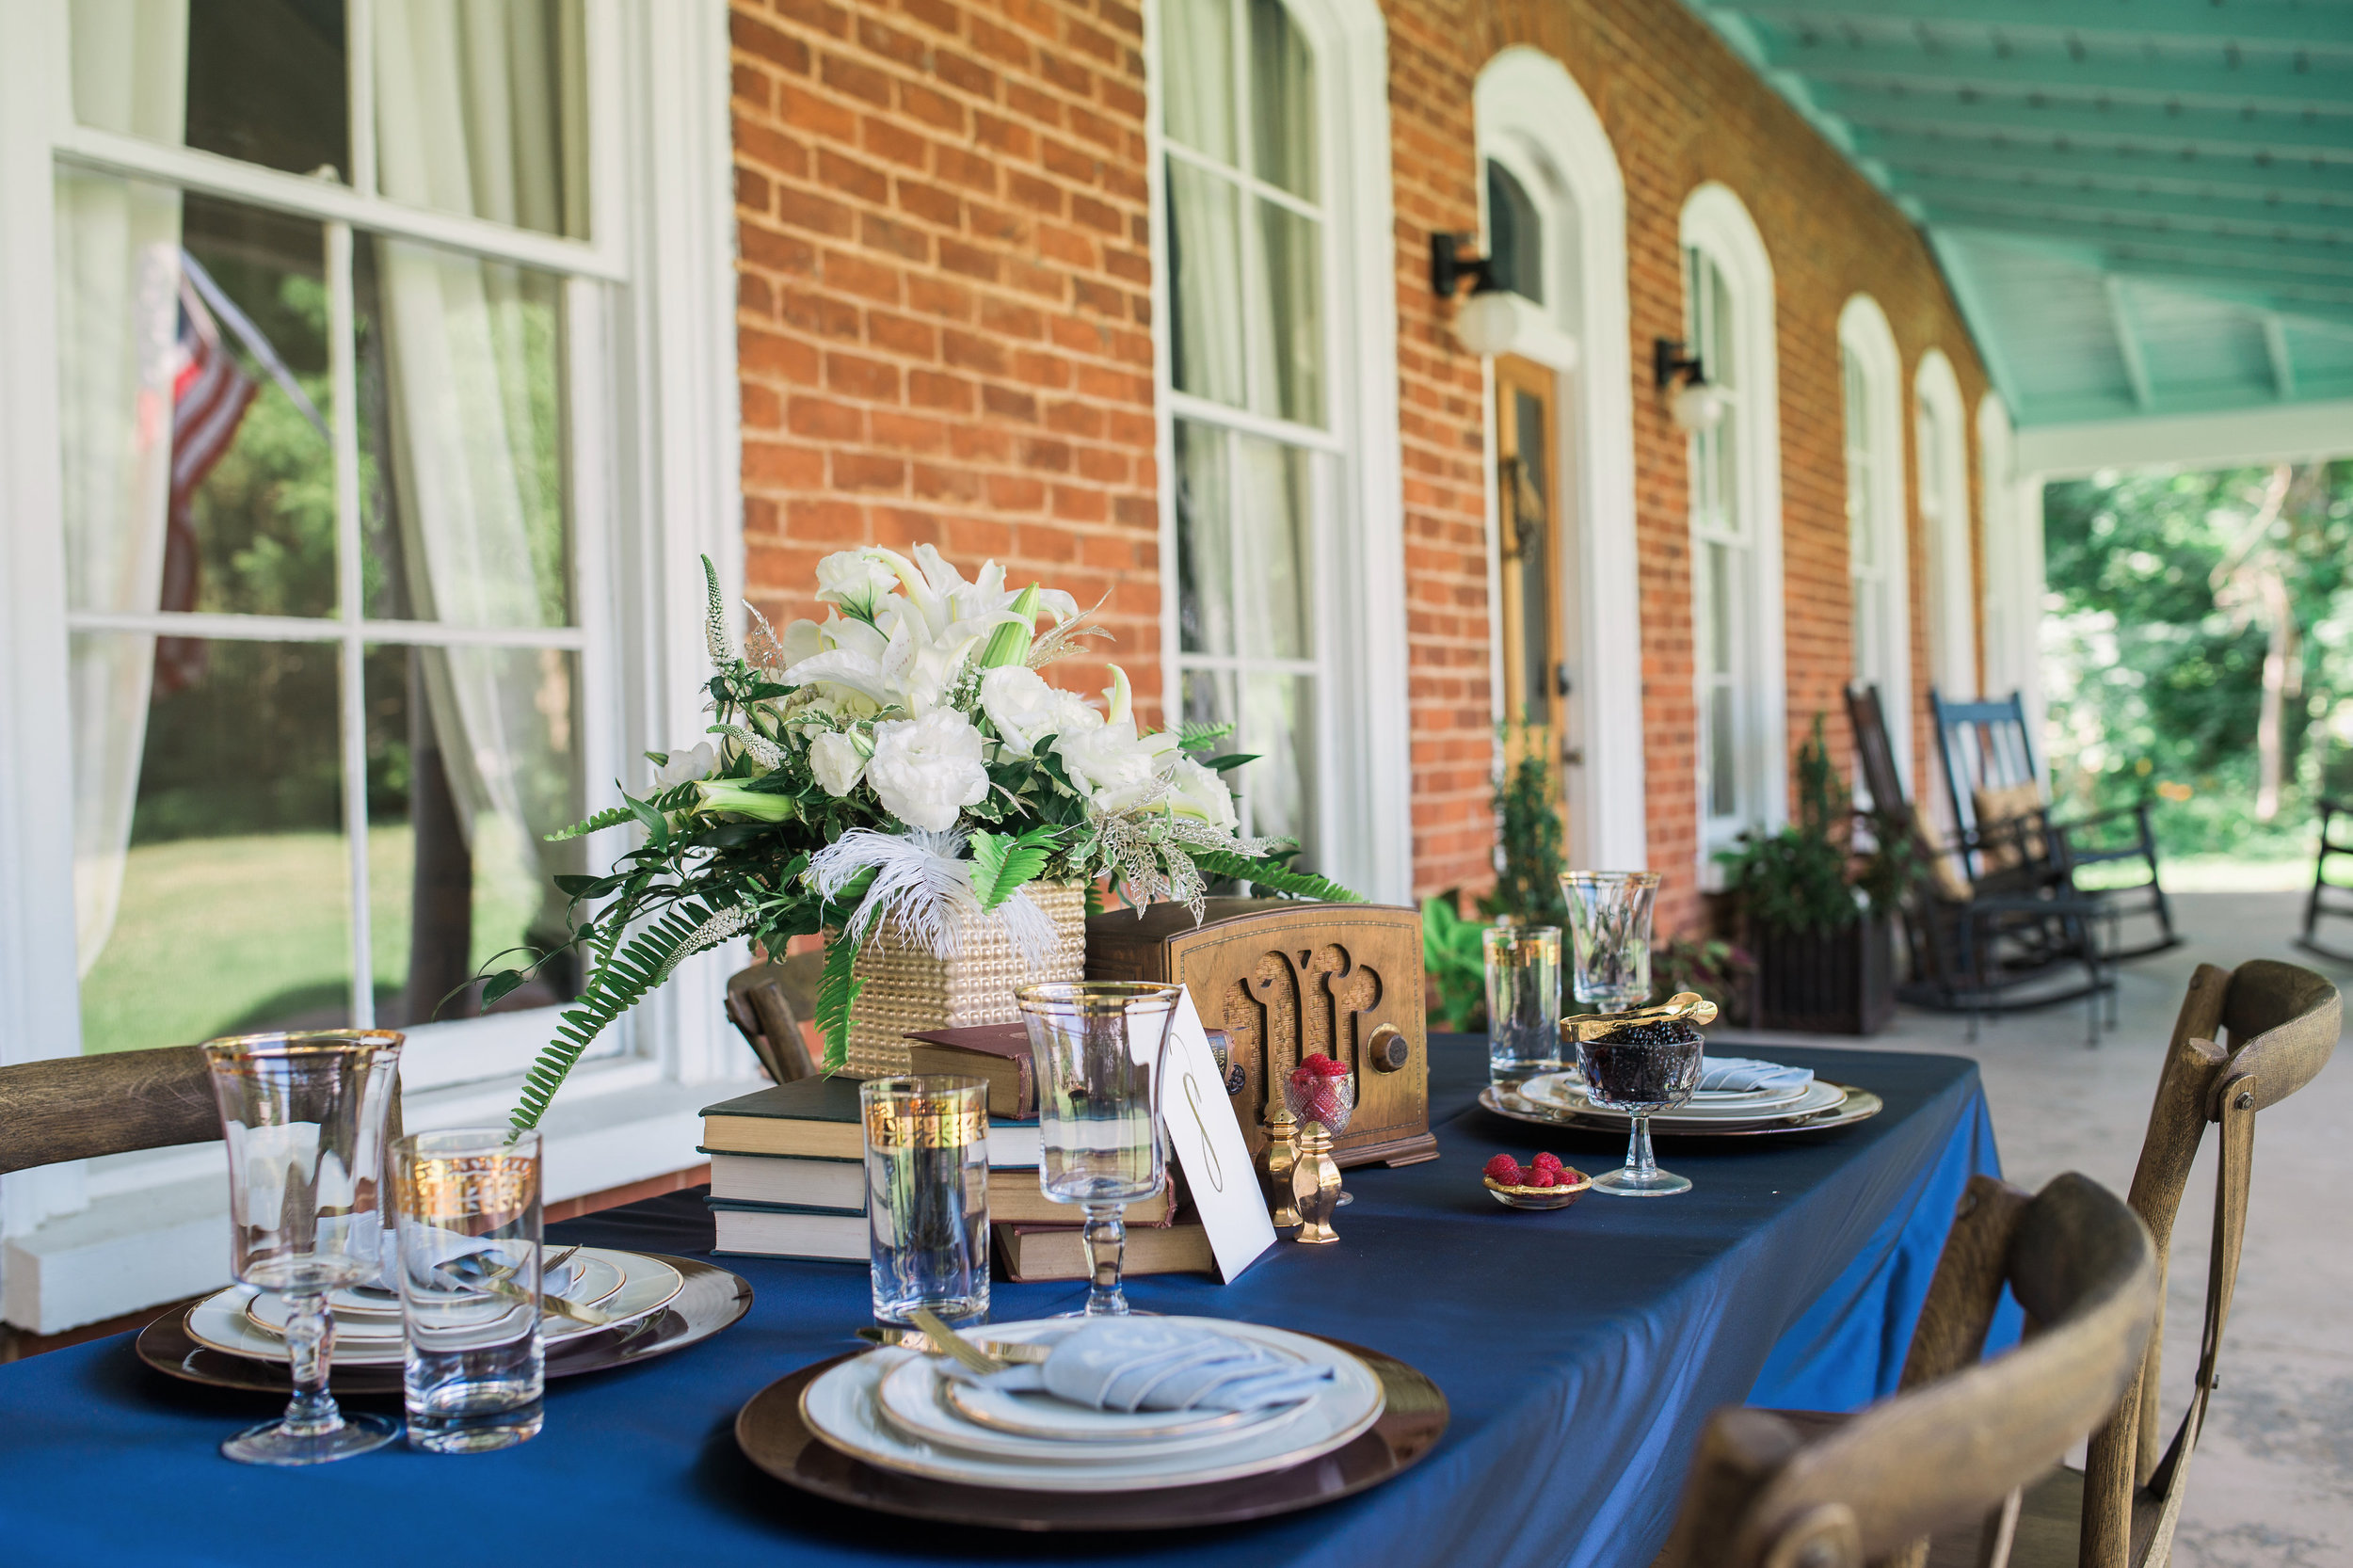 2front porch with table.jpg